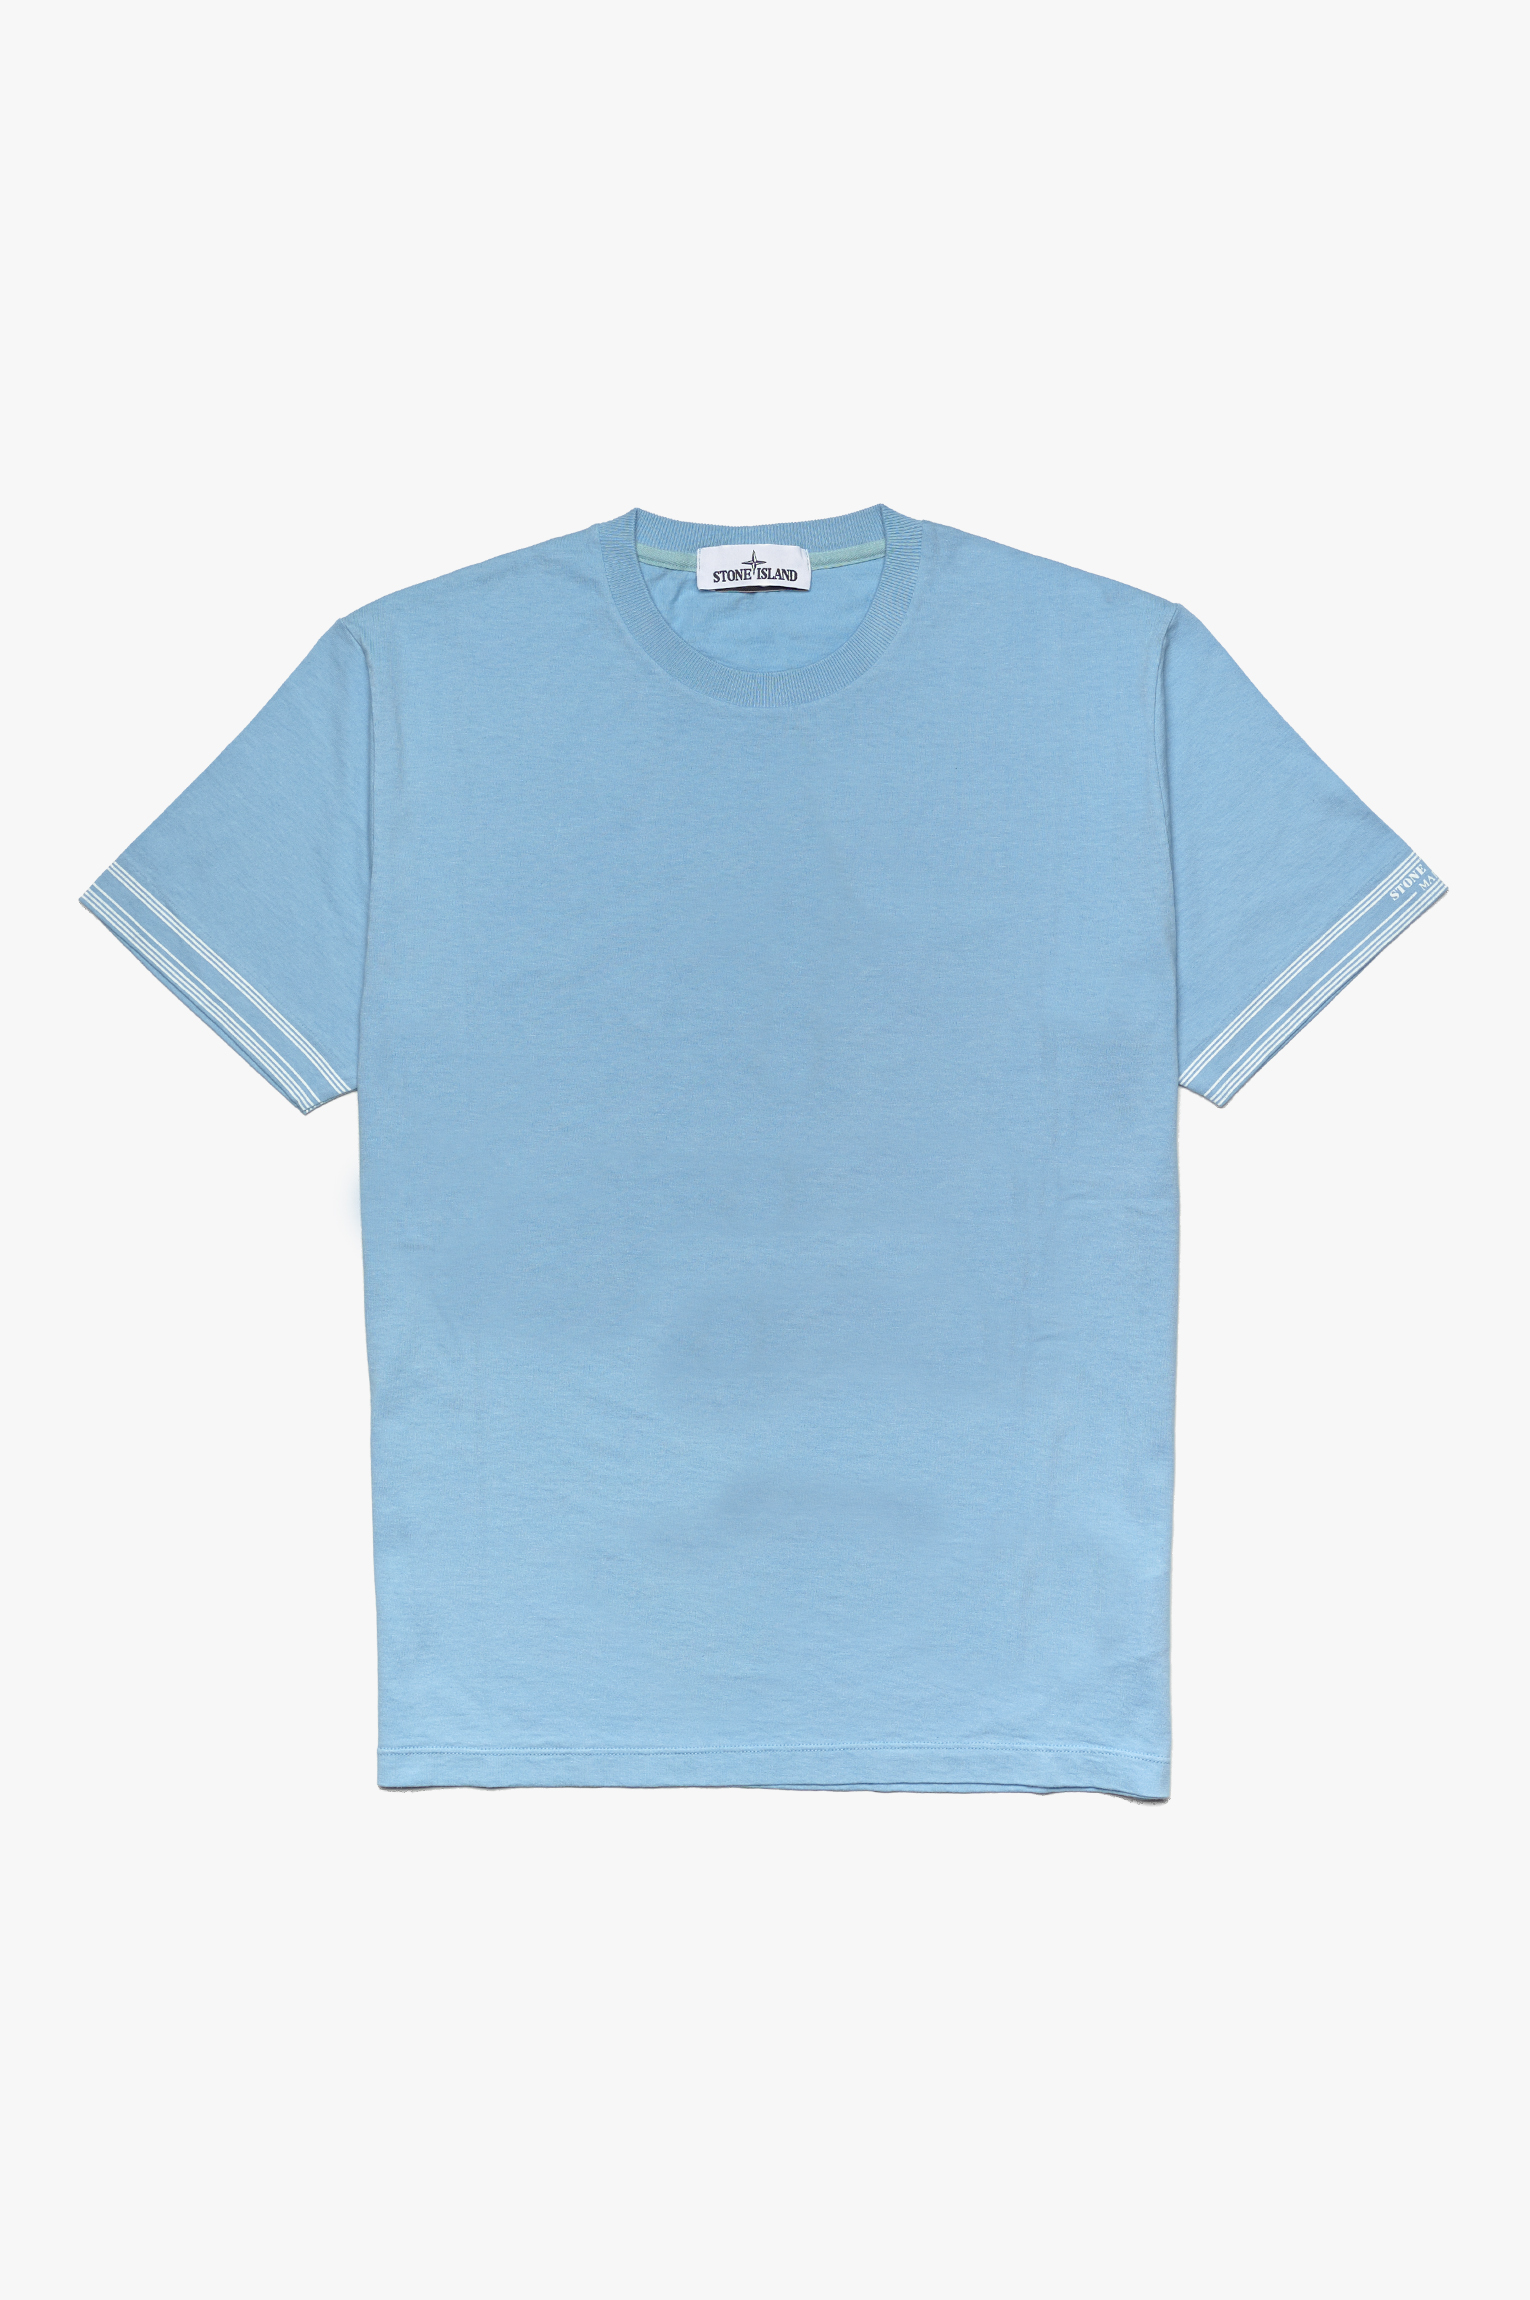 Marina T-Shirt Blue